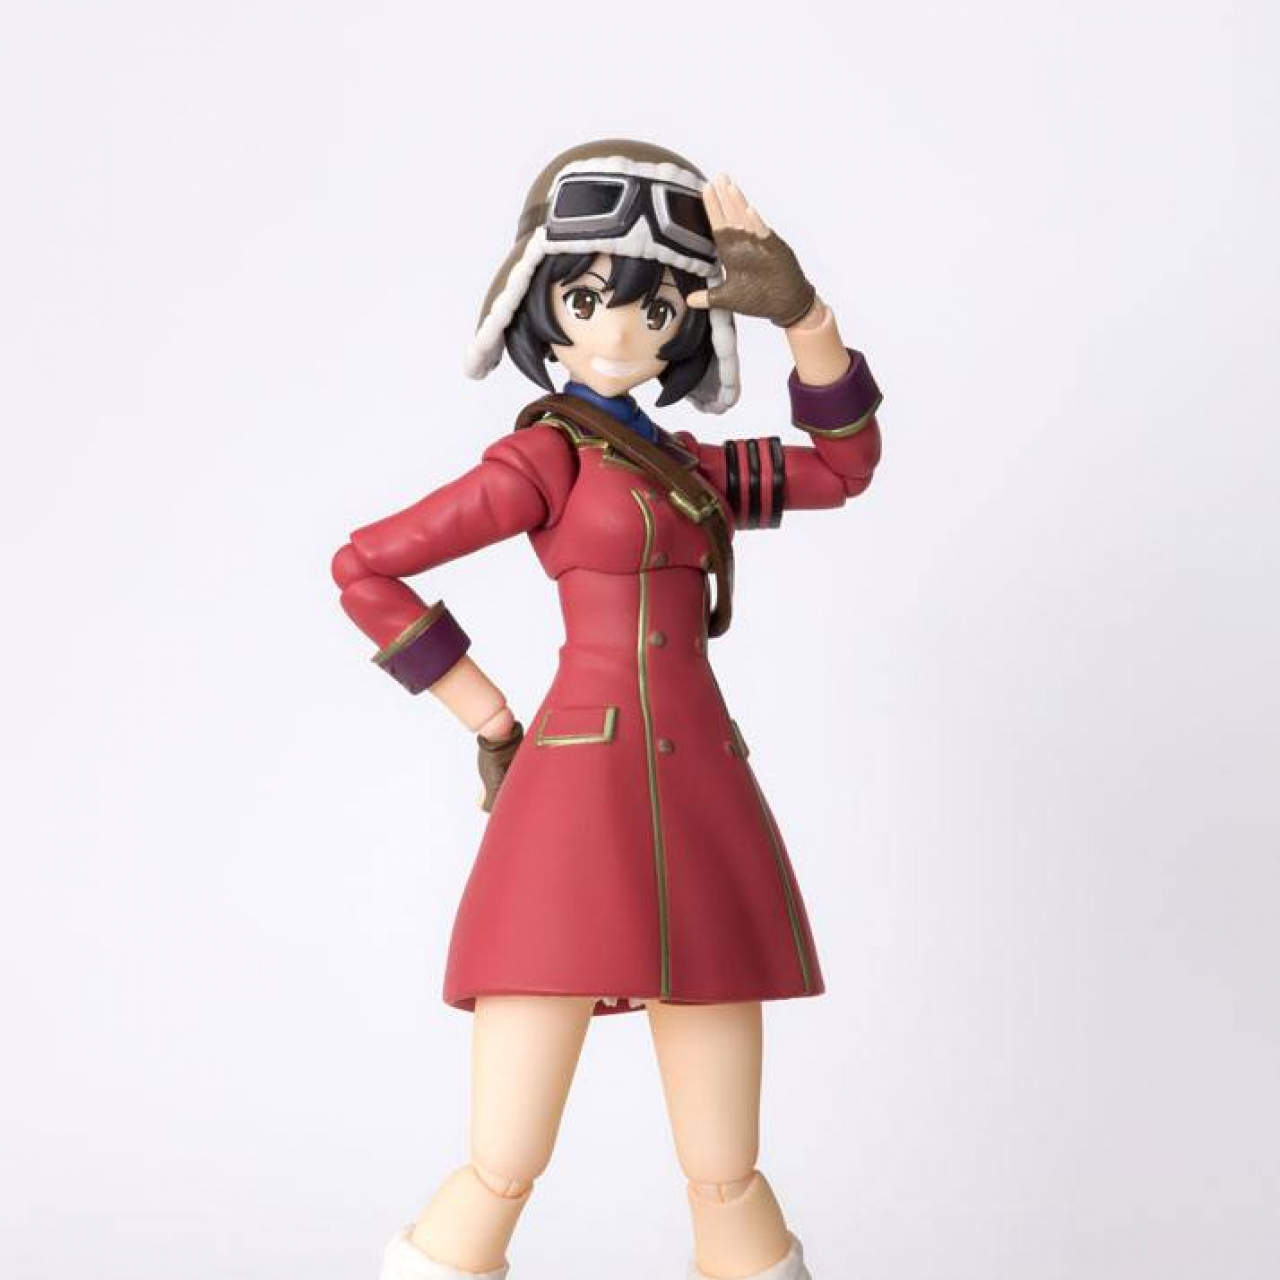 The Kotobuki Squadron in The Wilderness S.H. Figuarts Action Figure Kylie 14 cm